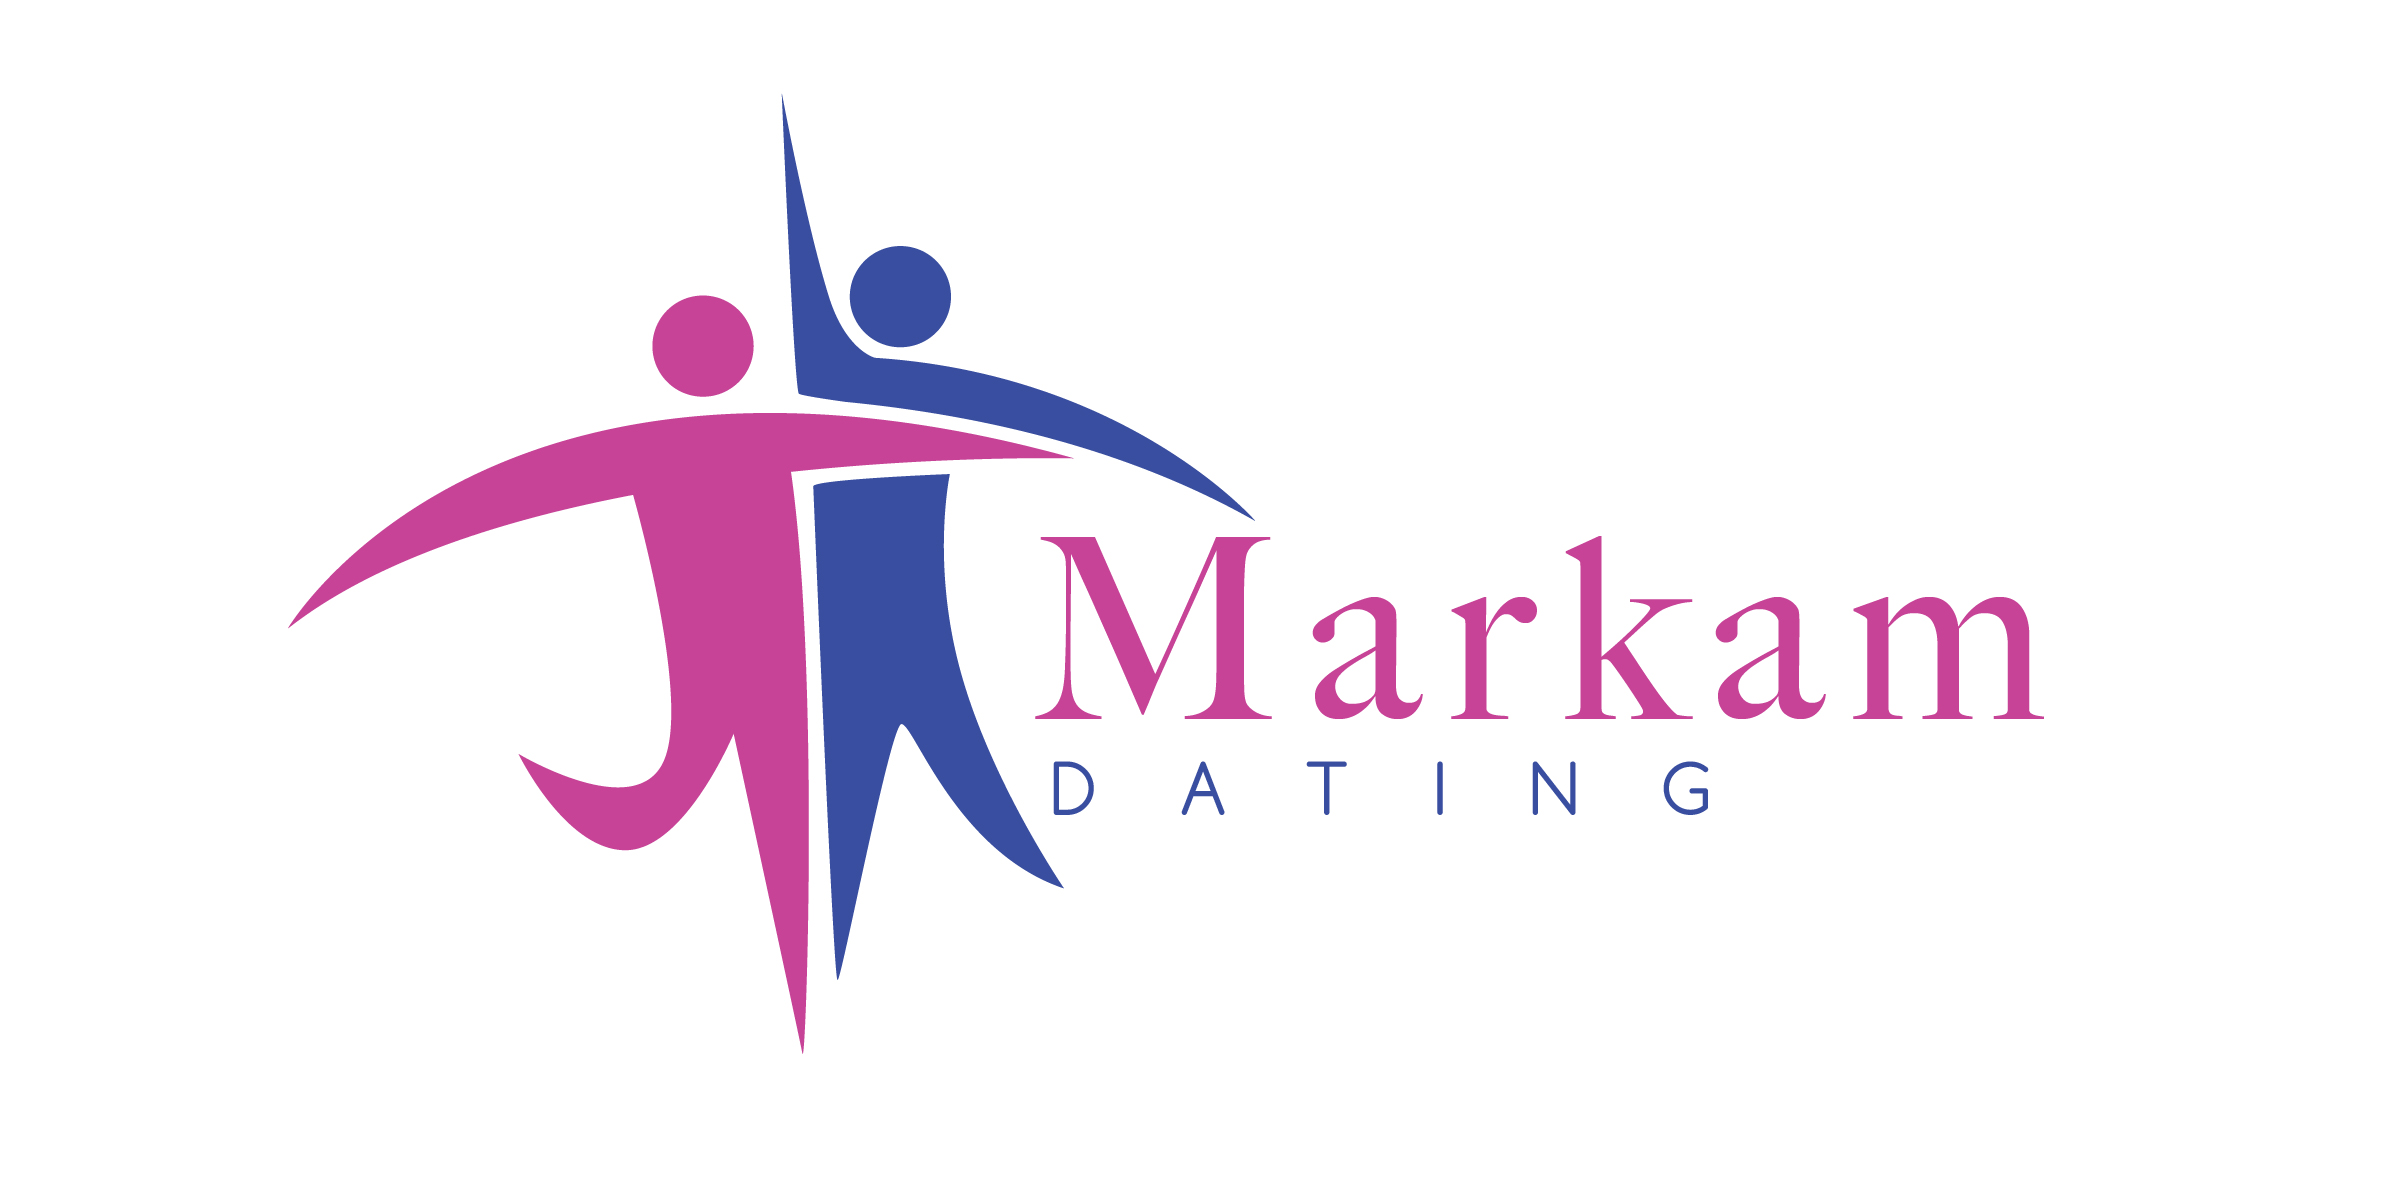 Markam Dating